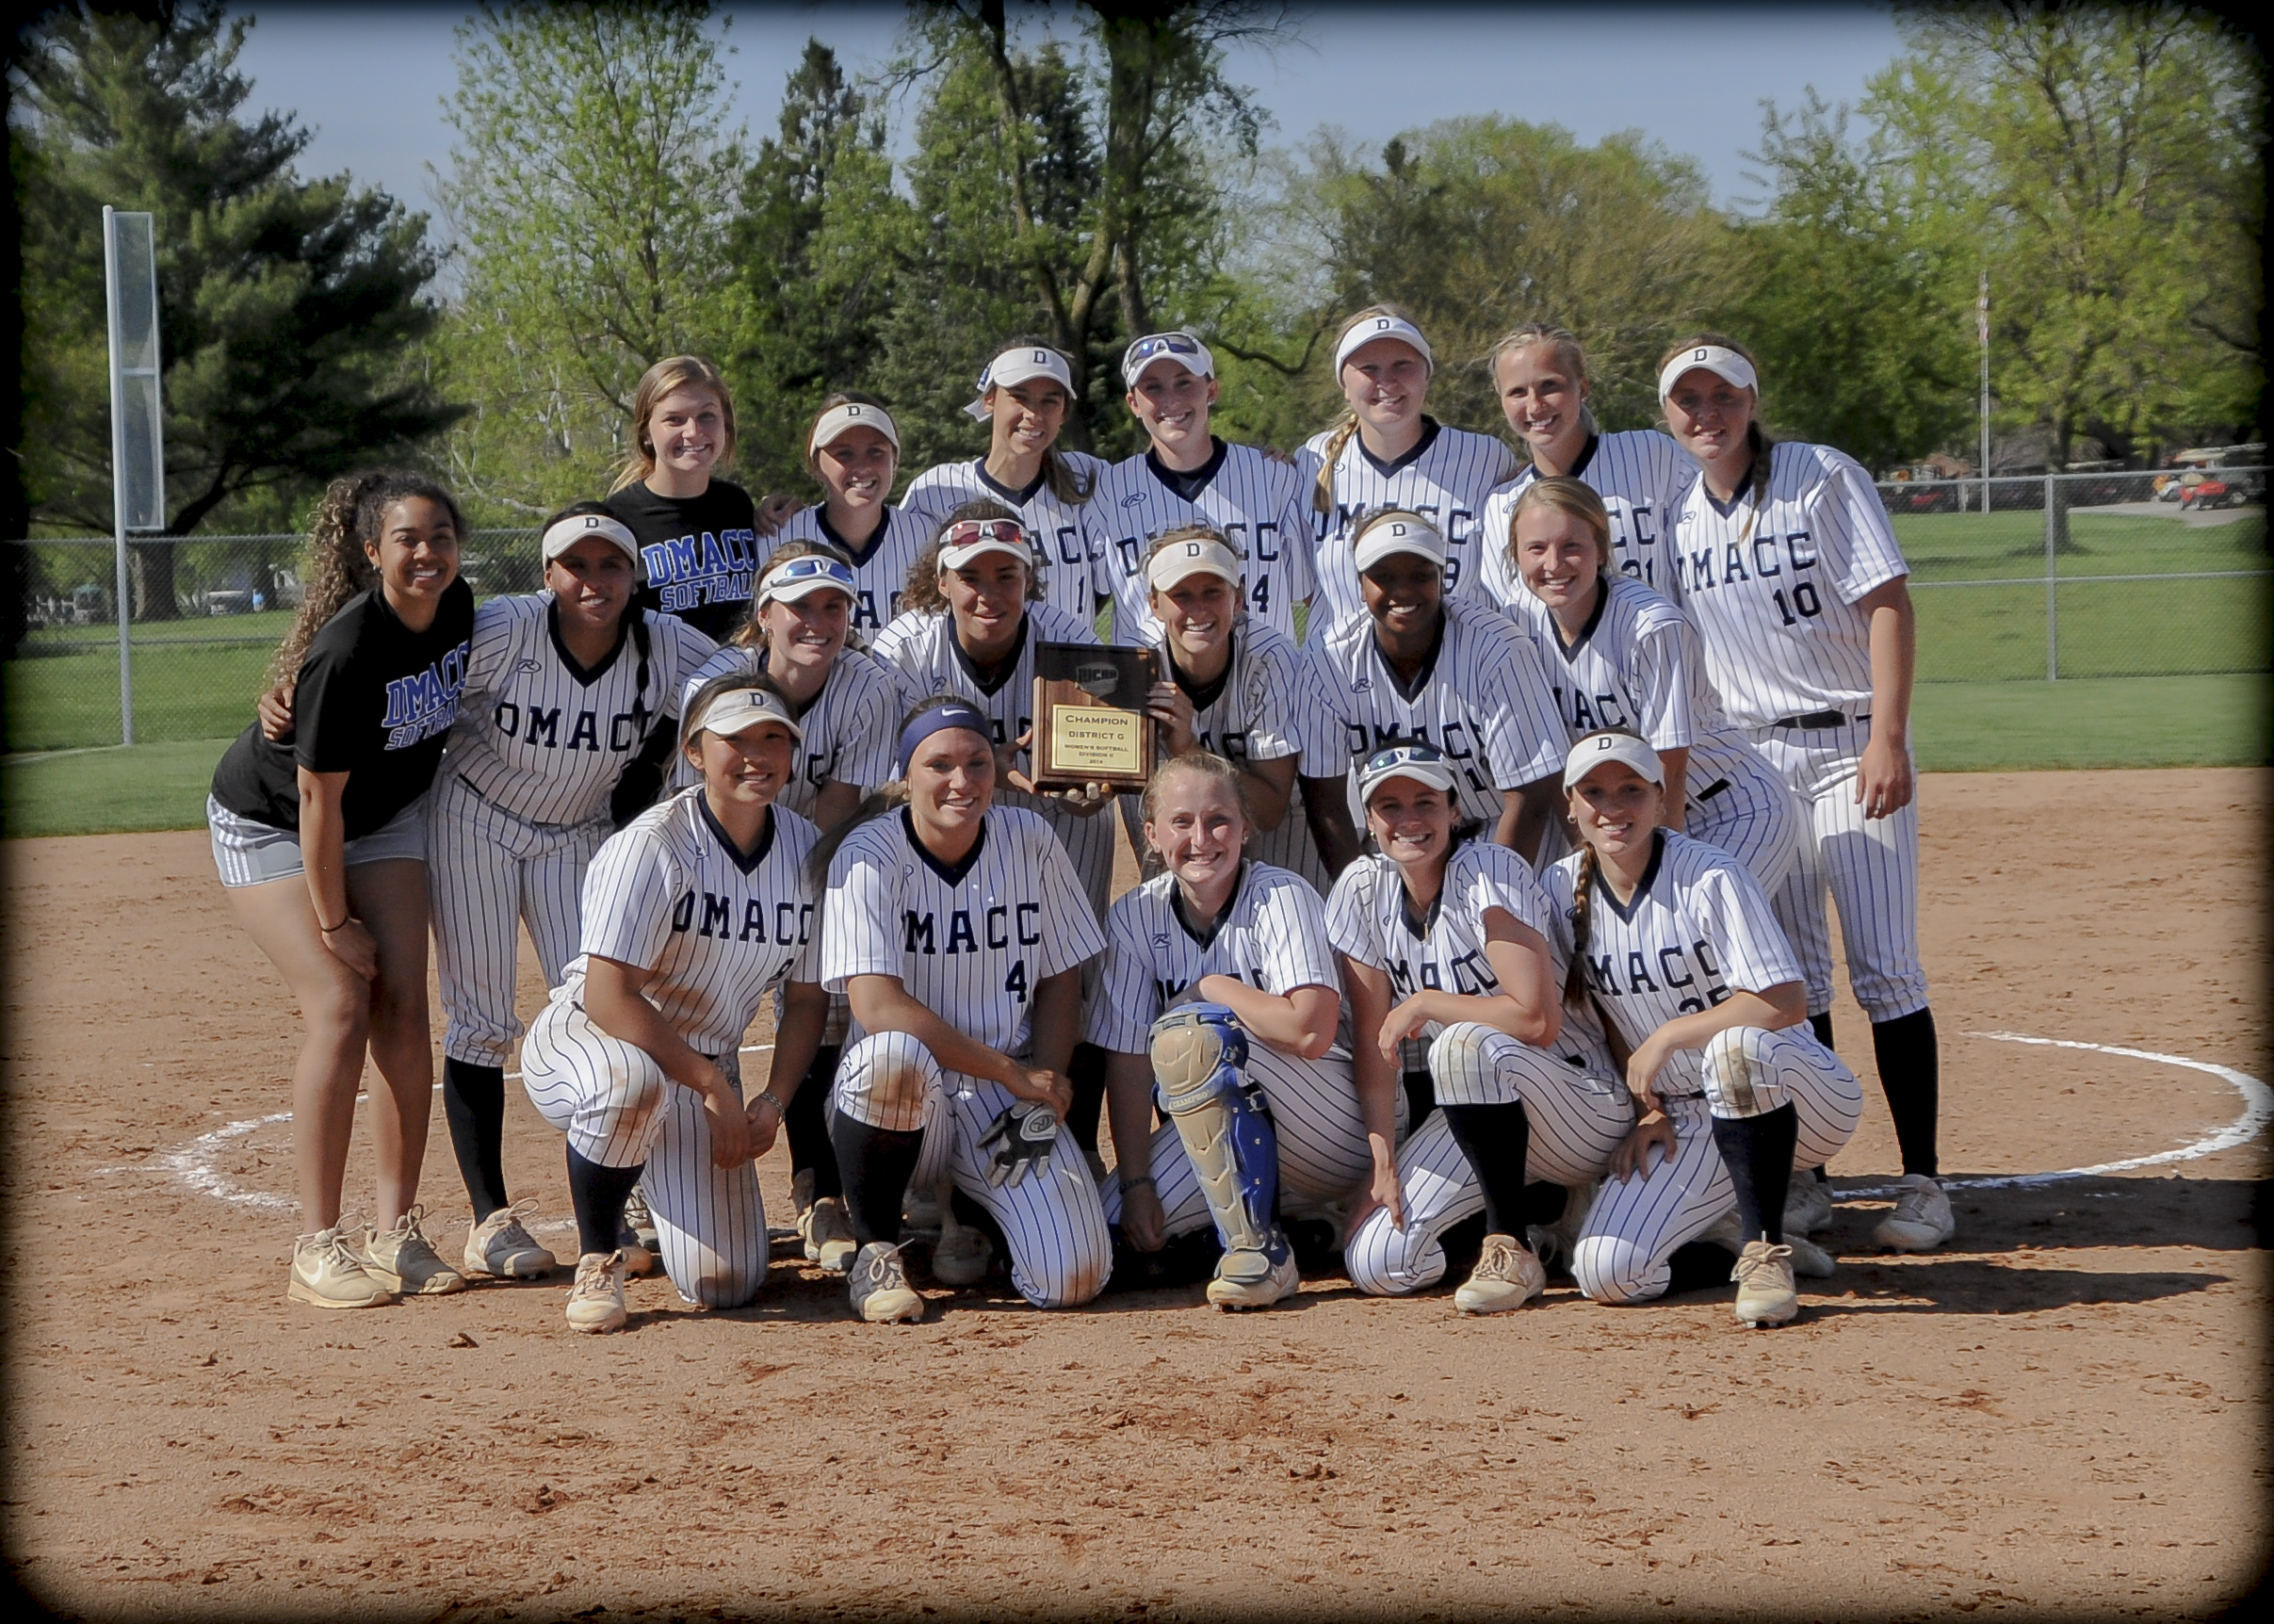 DMACC Softball Team with Championship plaque